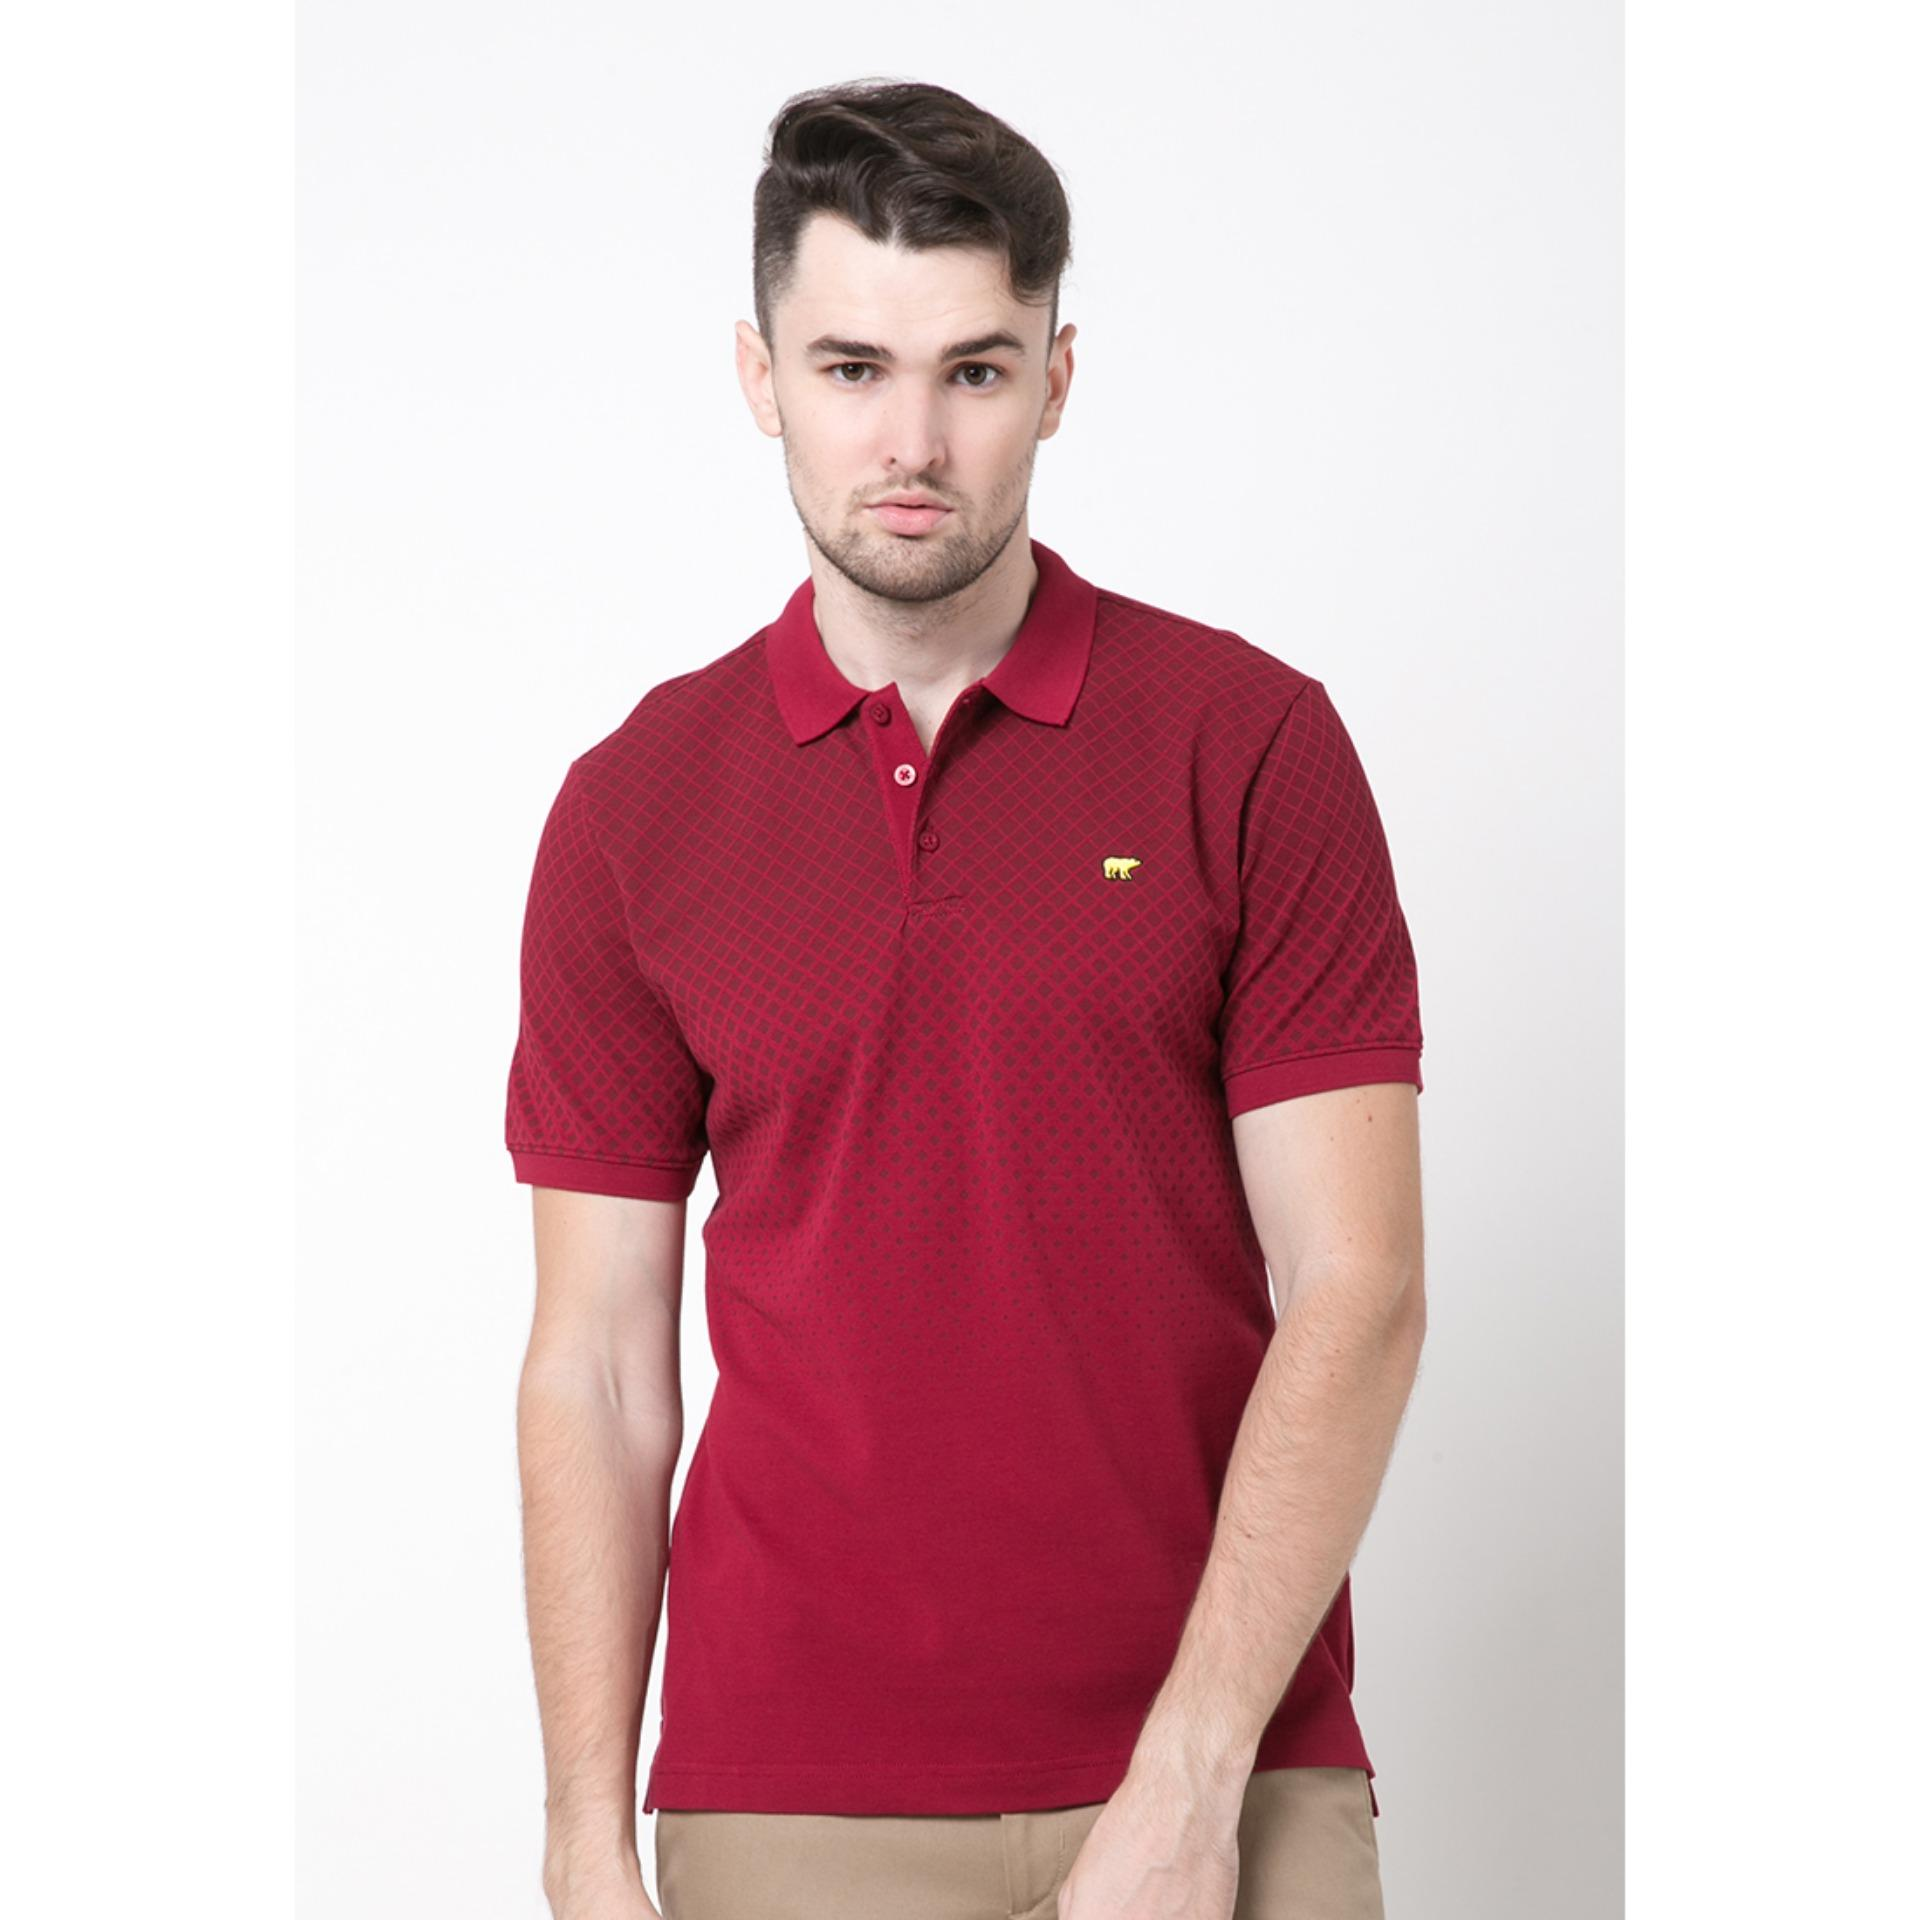 Jual Jack Nicklaus Lomond Burgundy Polo Shirt Jack Nicklaus Murah